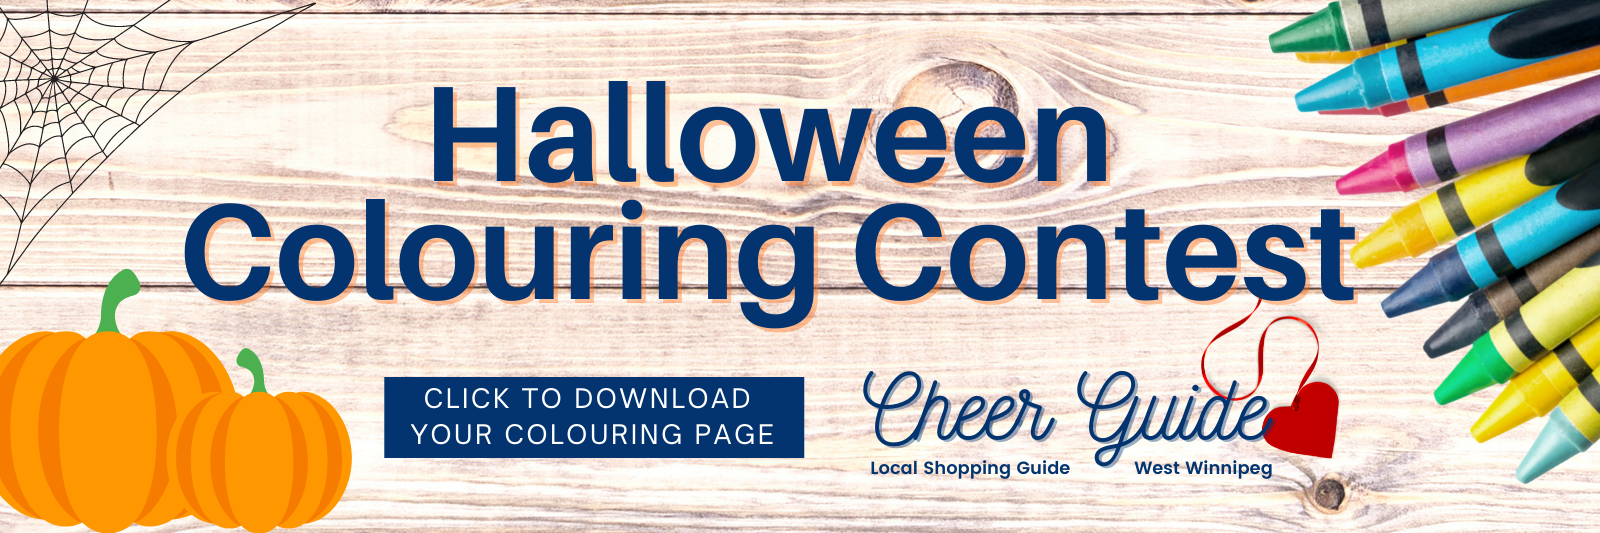 CheerHere_Banner_HalloweenColouringContest2021-(Instagram-Story)-(1600-x-533-px)-(1).png